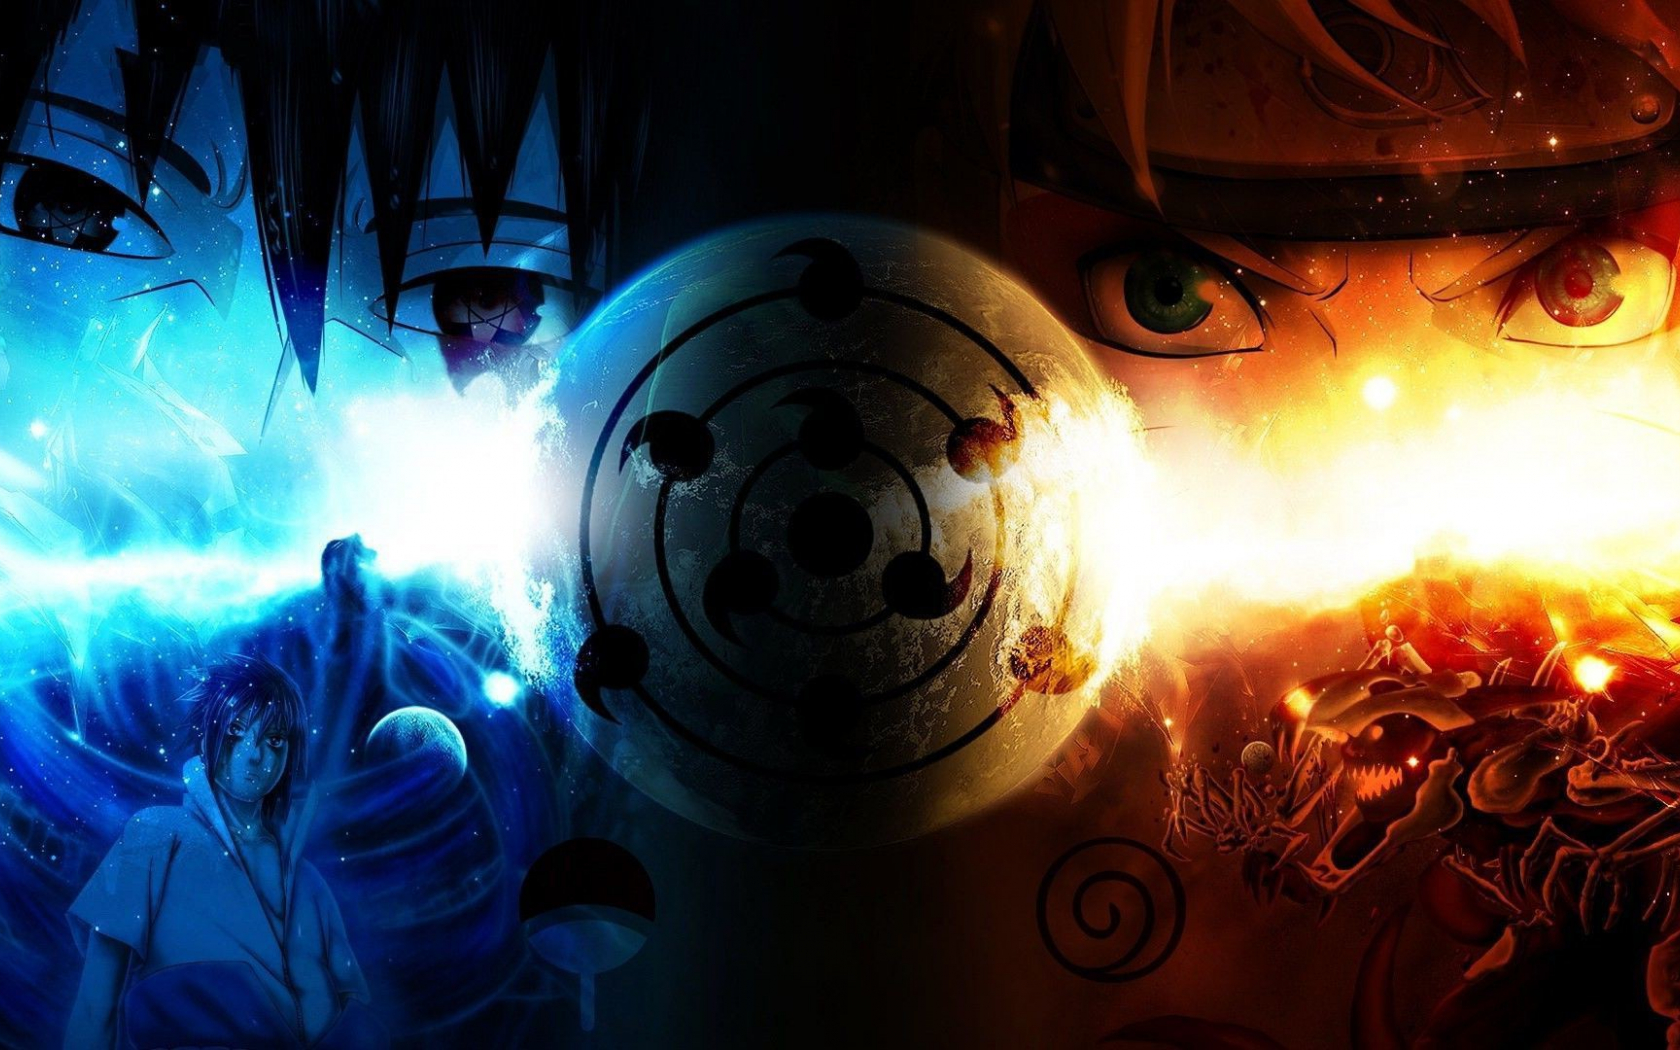 Free download Naruto Fire And Ice HD Anime Wallpaper ...